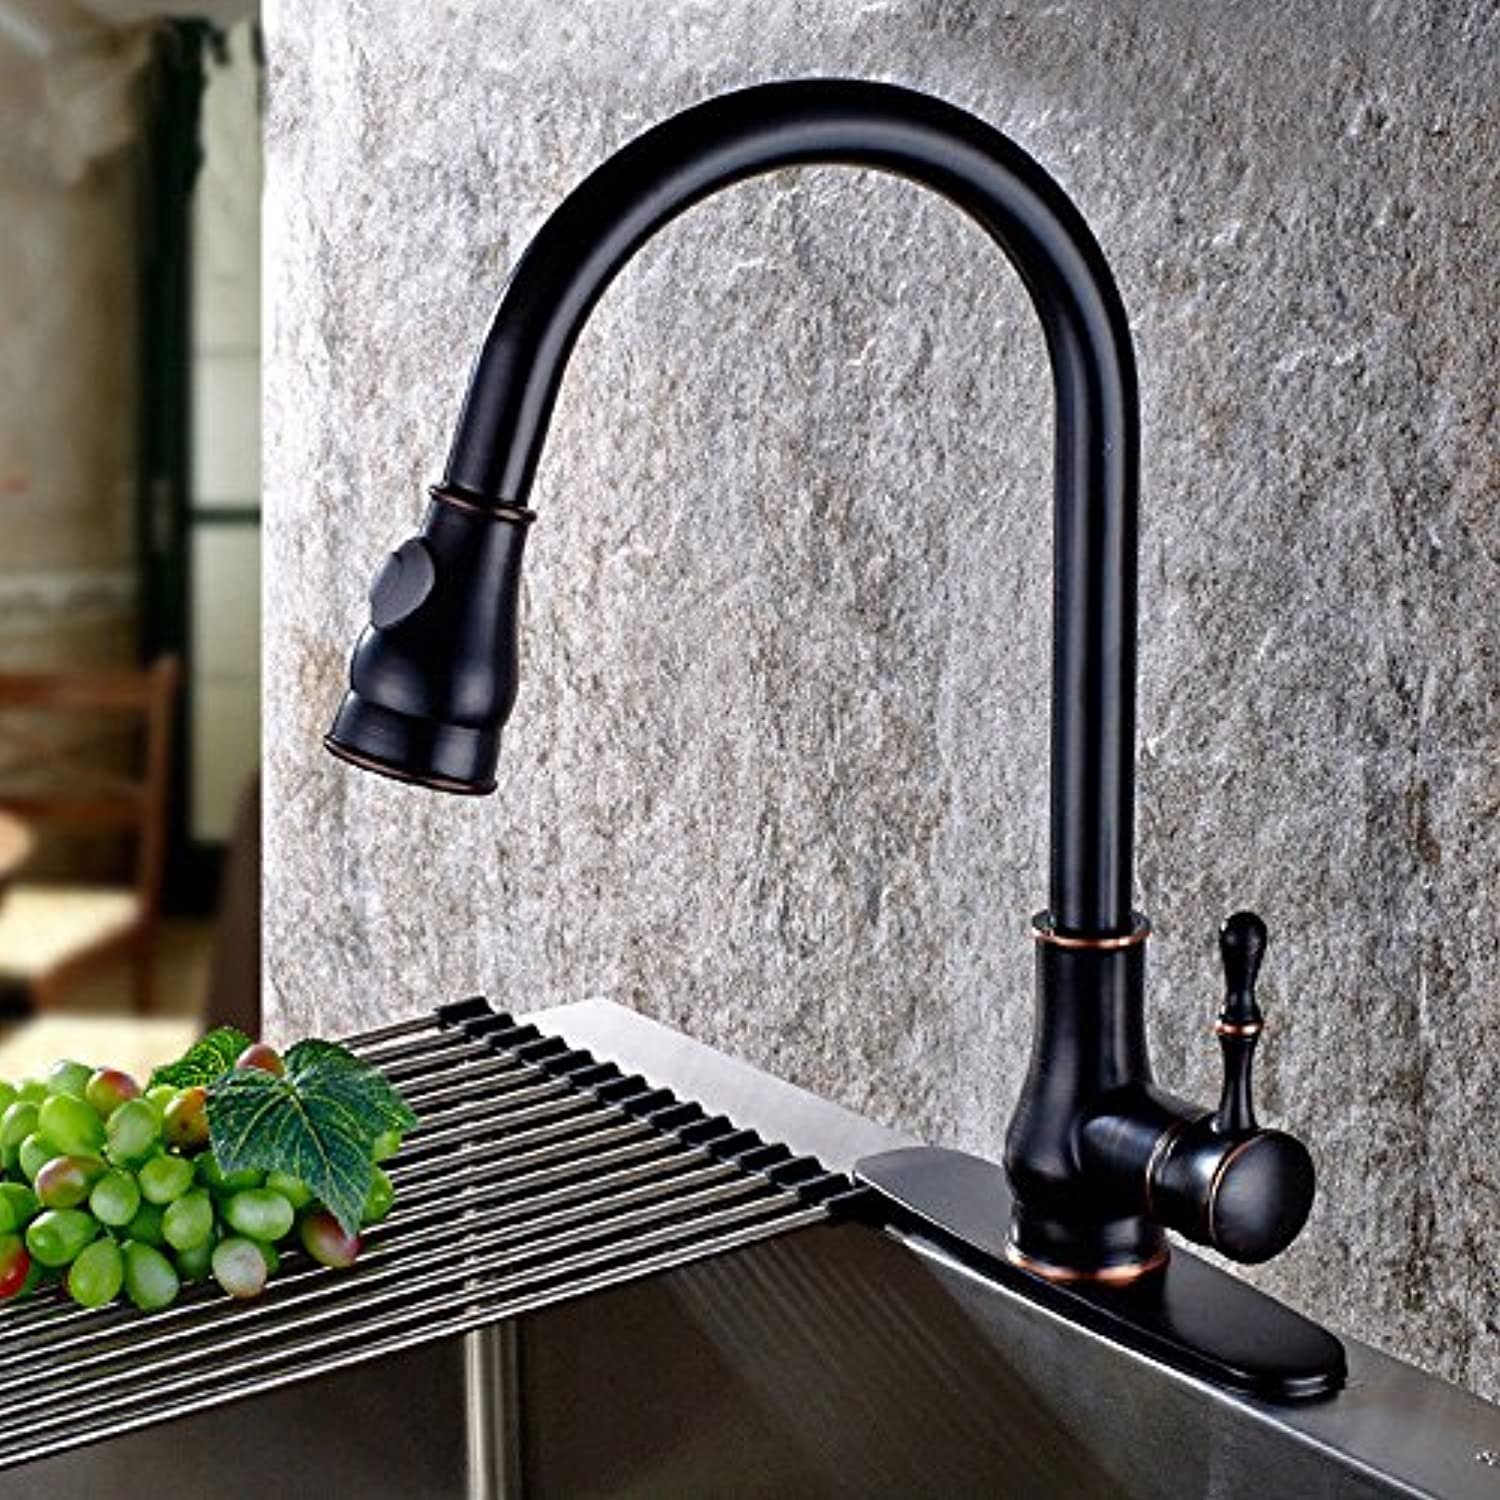 ETERNAL QUALITY Bathroom Sink Basin Tap Brass Mixer Tap Washroom Mixer Faucet Antique simple full copper hot and cold kitchen sink faucet kitchen faucet a whole. Kitchen